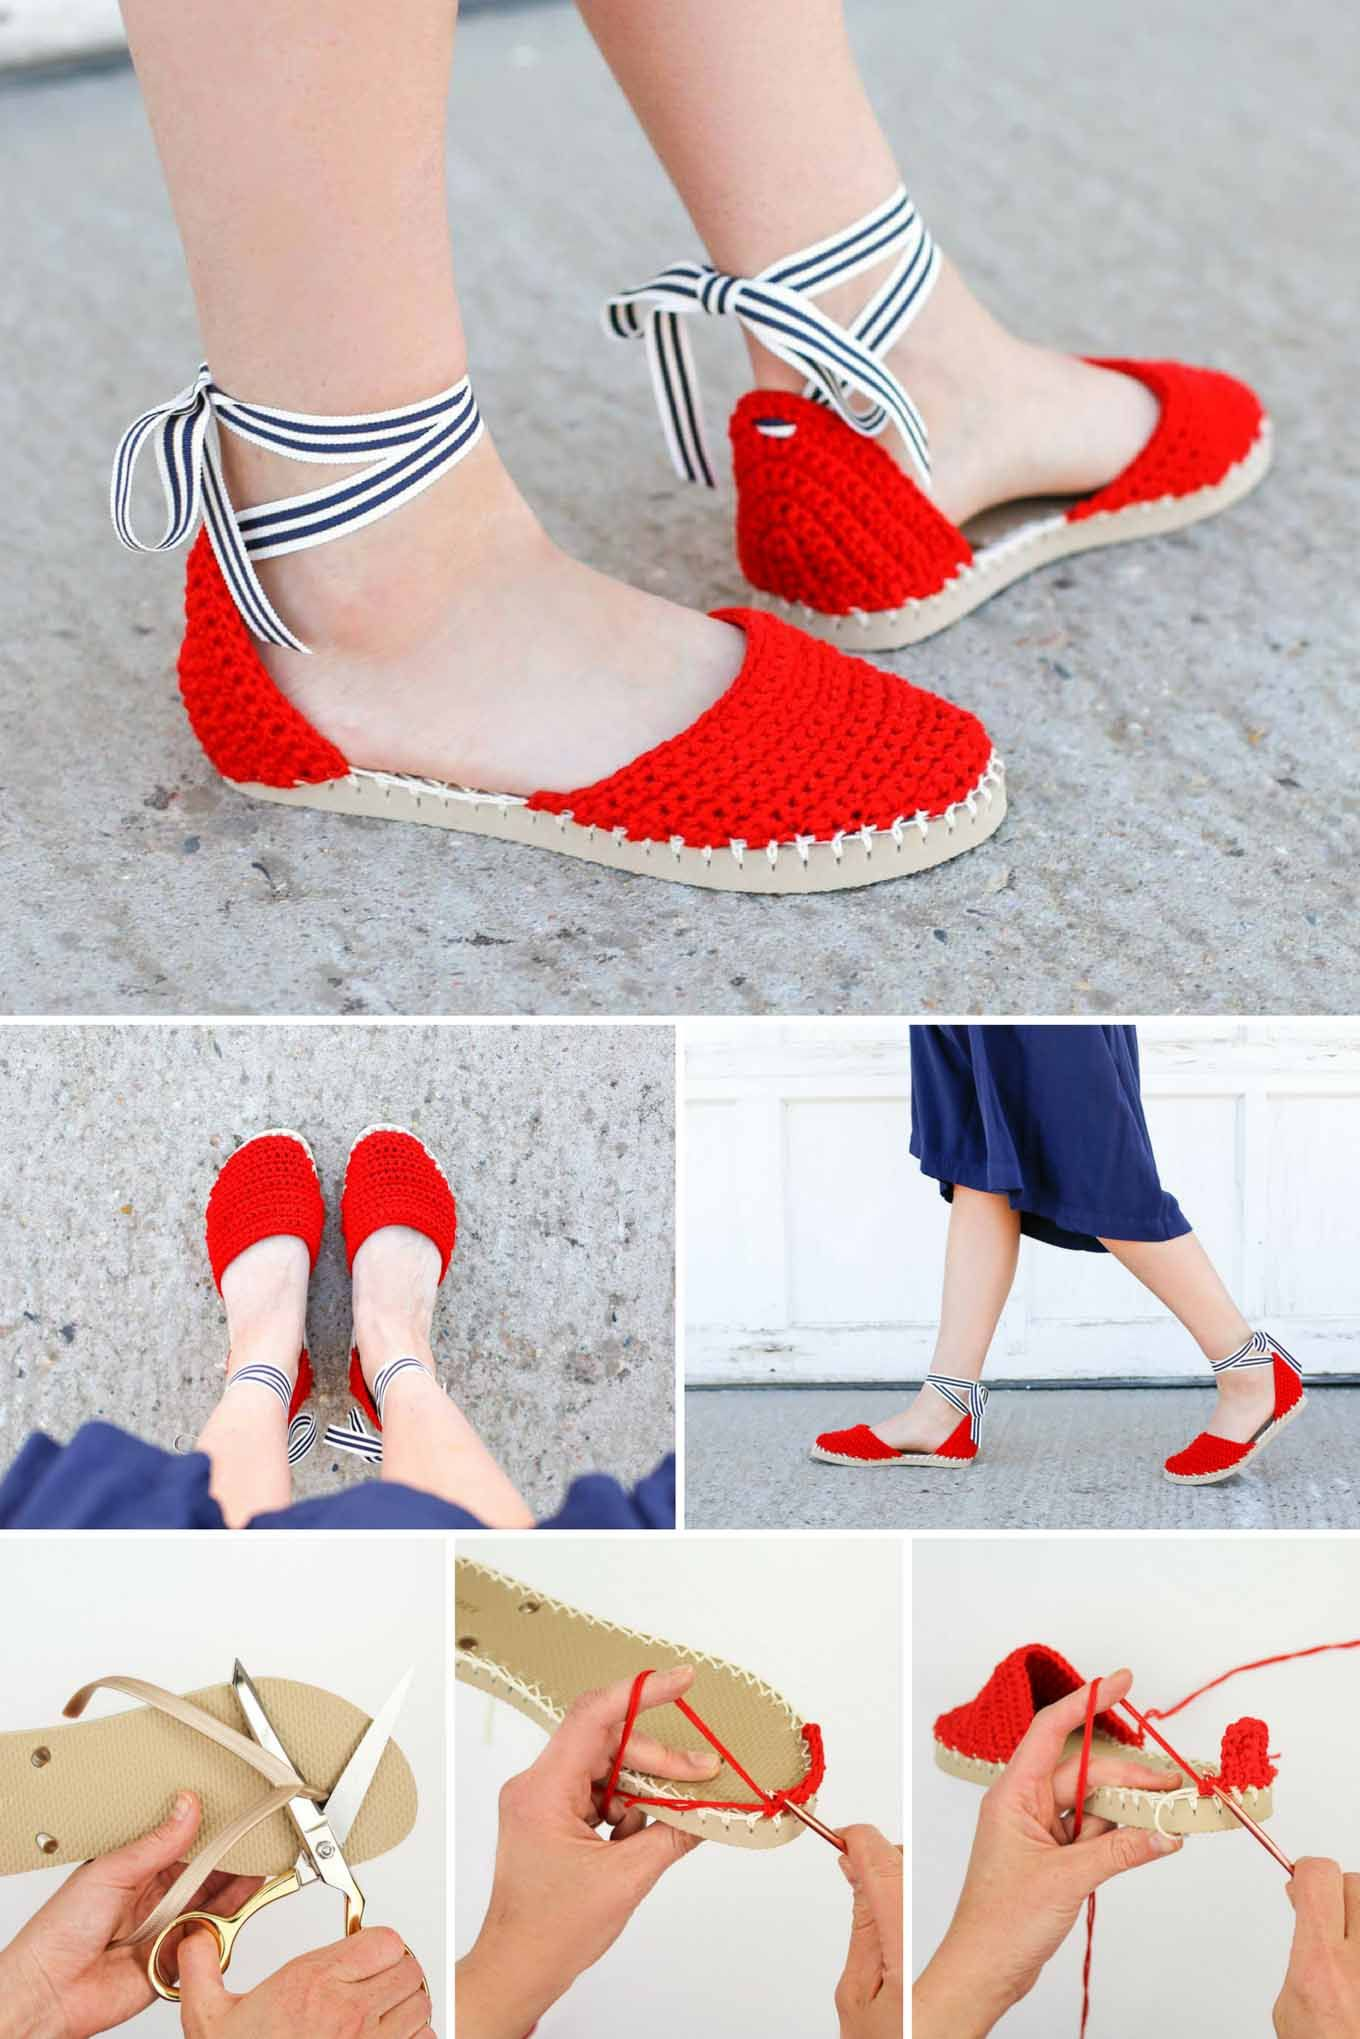 efe7ef5c2 Learn how to make crochet espadrilles with flip flop soles in this free  pattern and tutorial. Pair these fun crochet sandals with a dress!